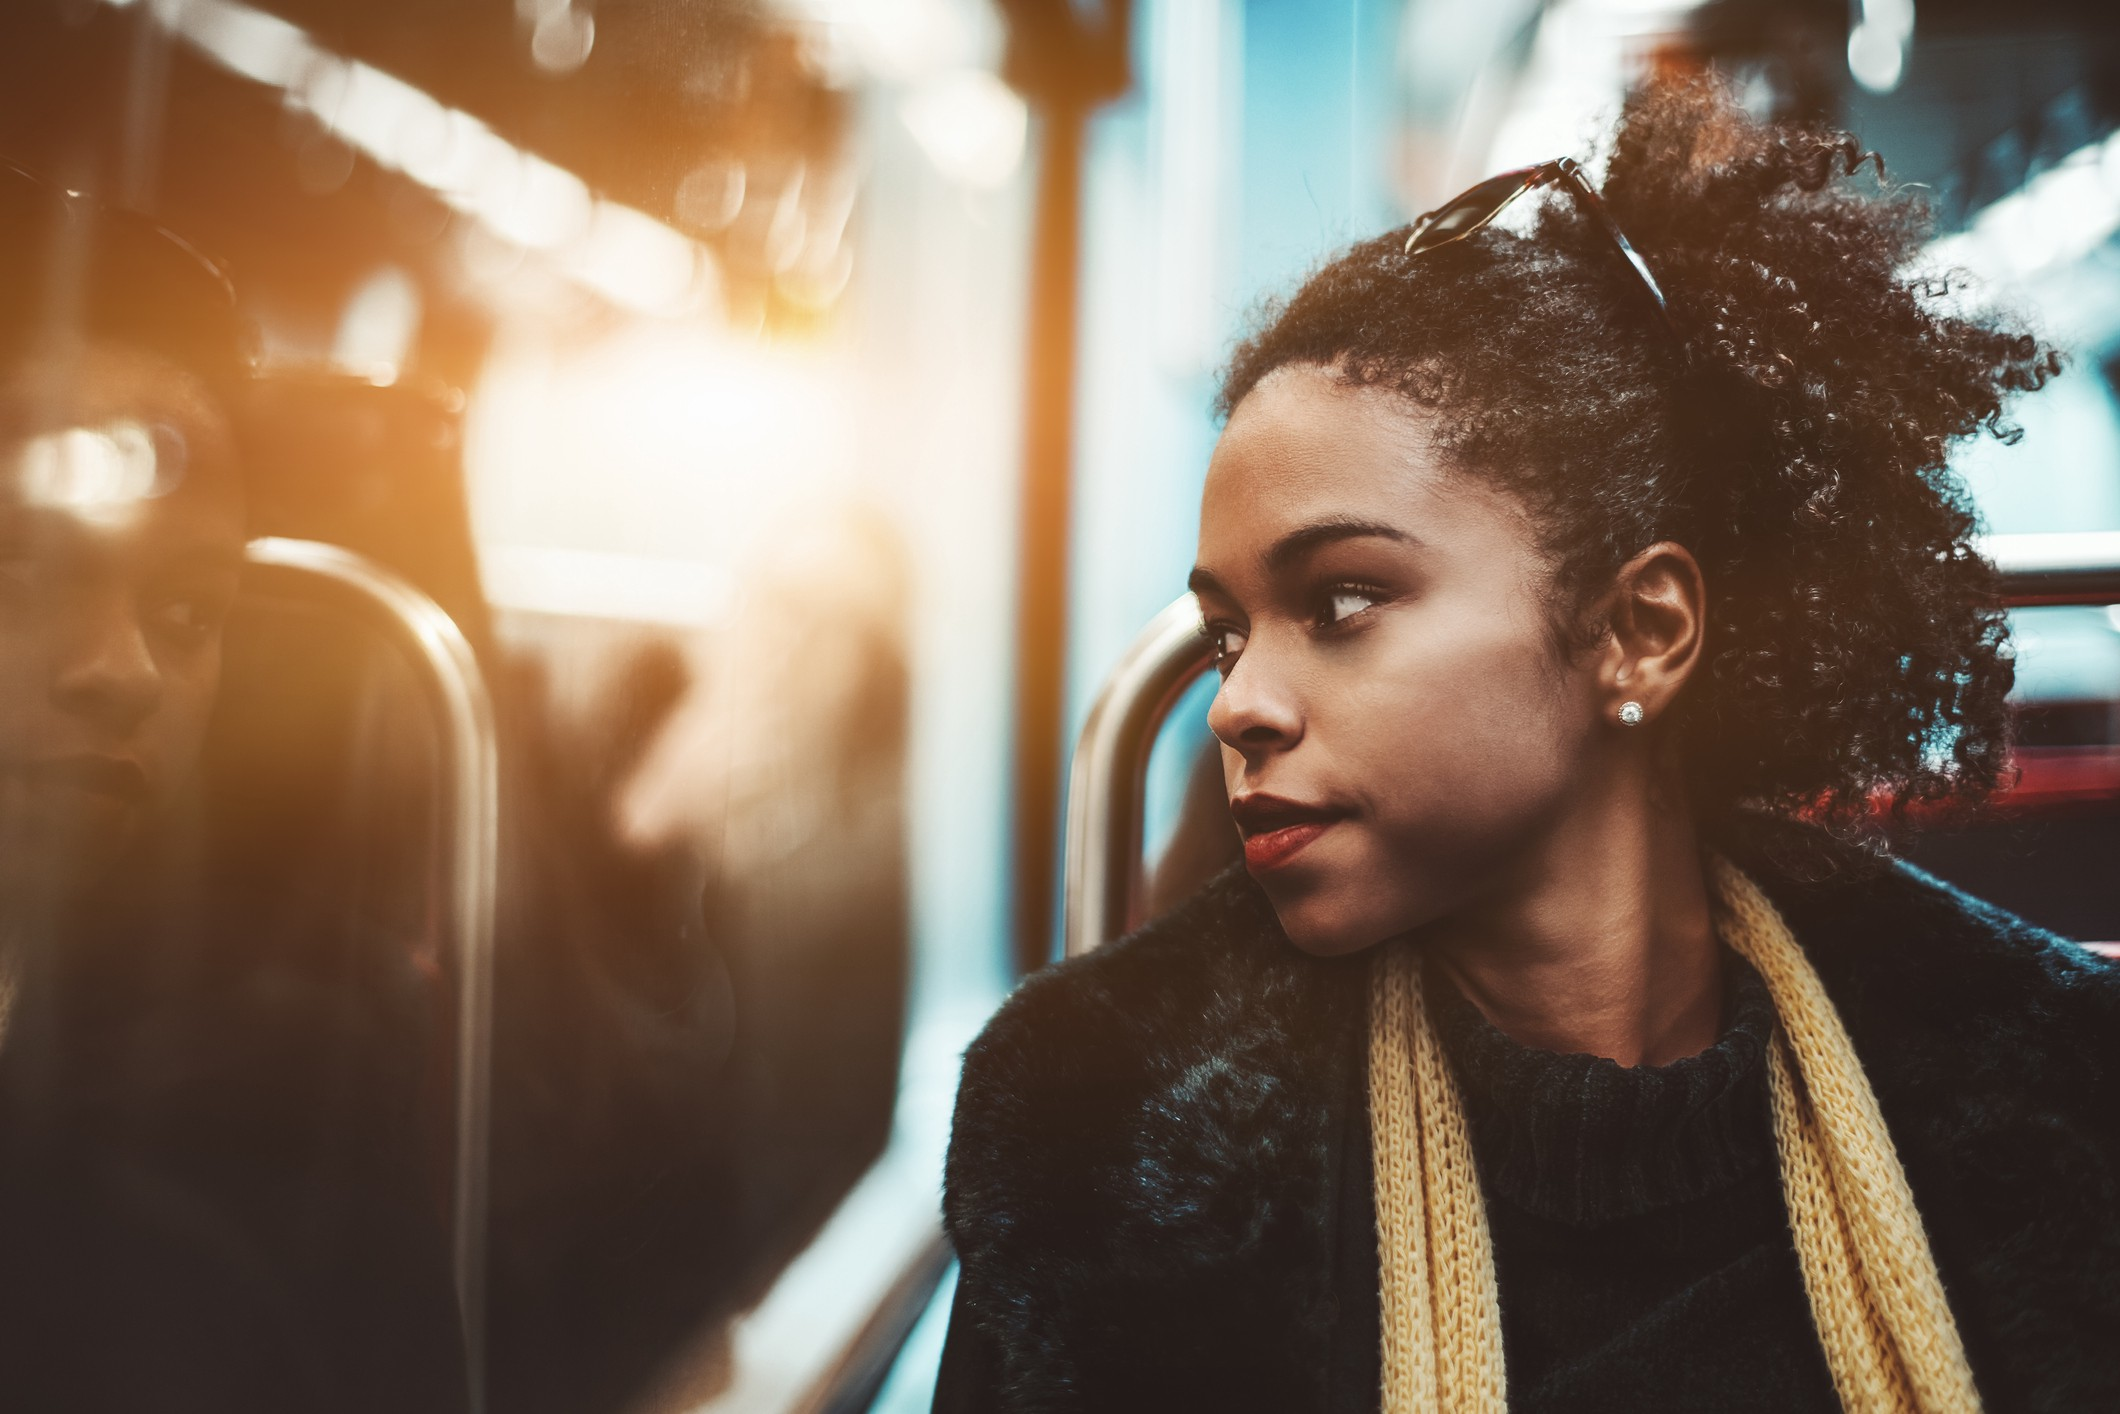 A pensive black woman looks out the window of a bus.